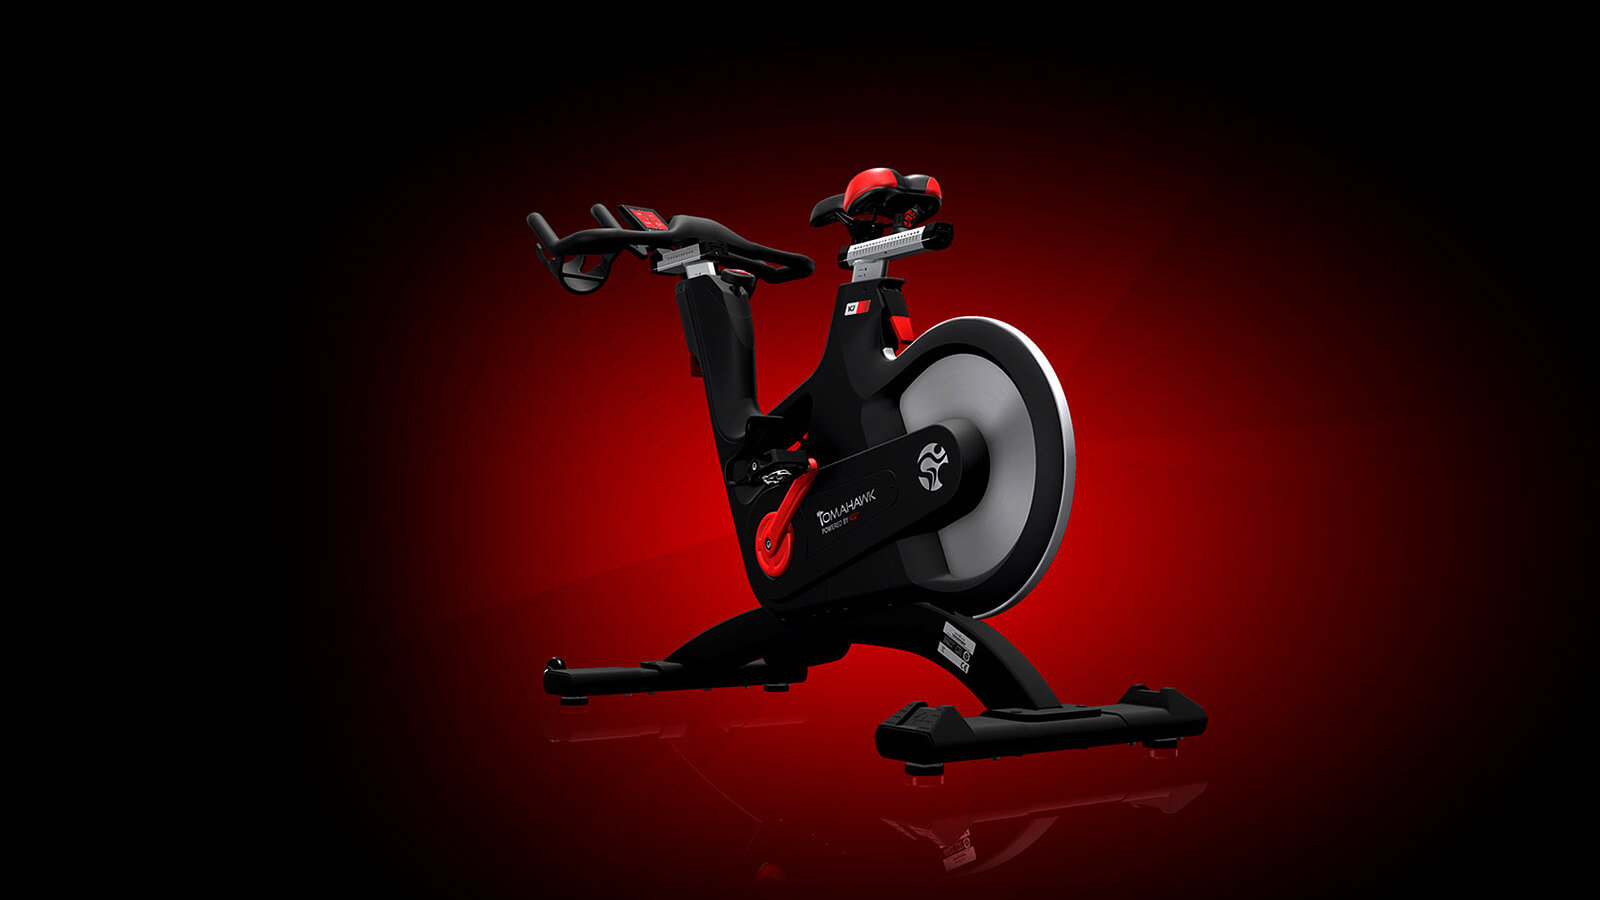 TOMAHAWK IC7 SpeedBike - Indoor-Cycling